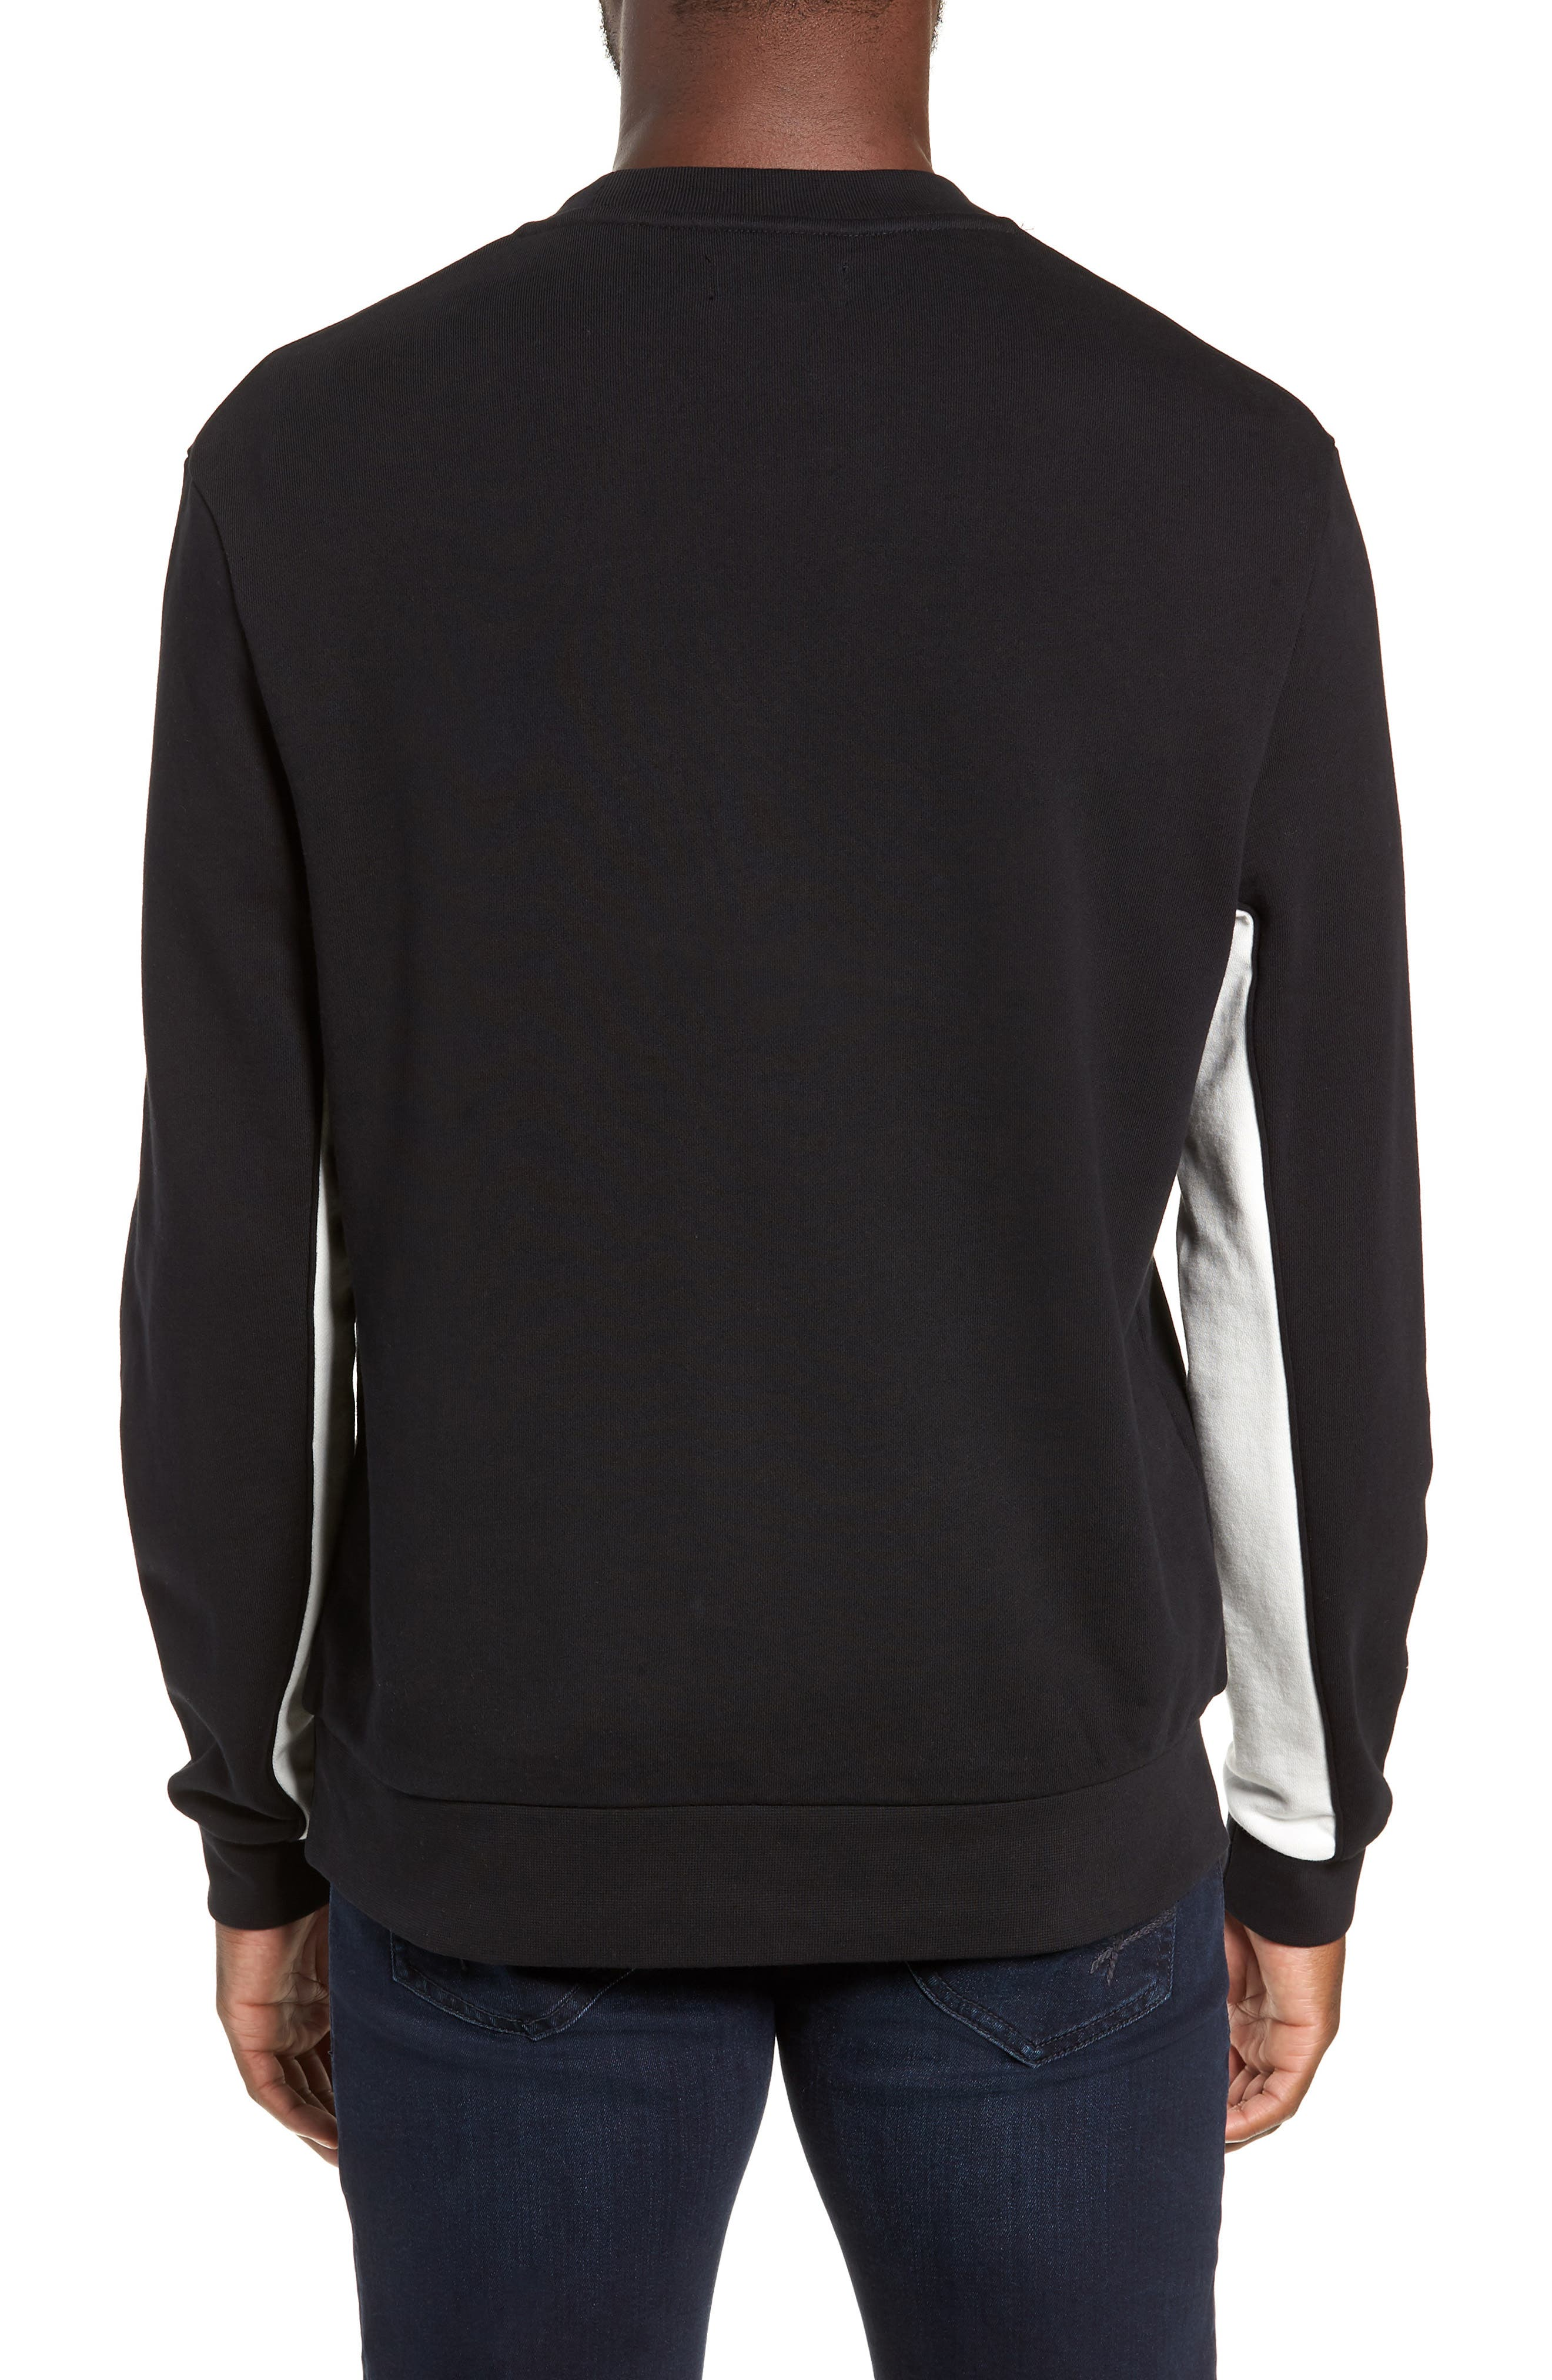 Colorblock Crewneck Sweatshirt,                             Alternate thumbnail 2, color,                             BLACK